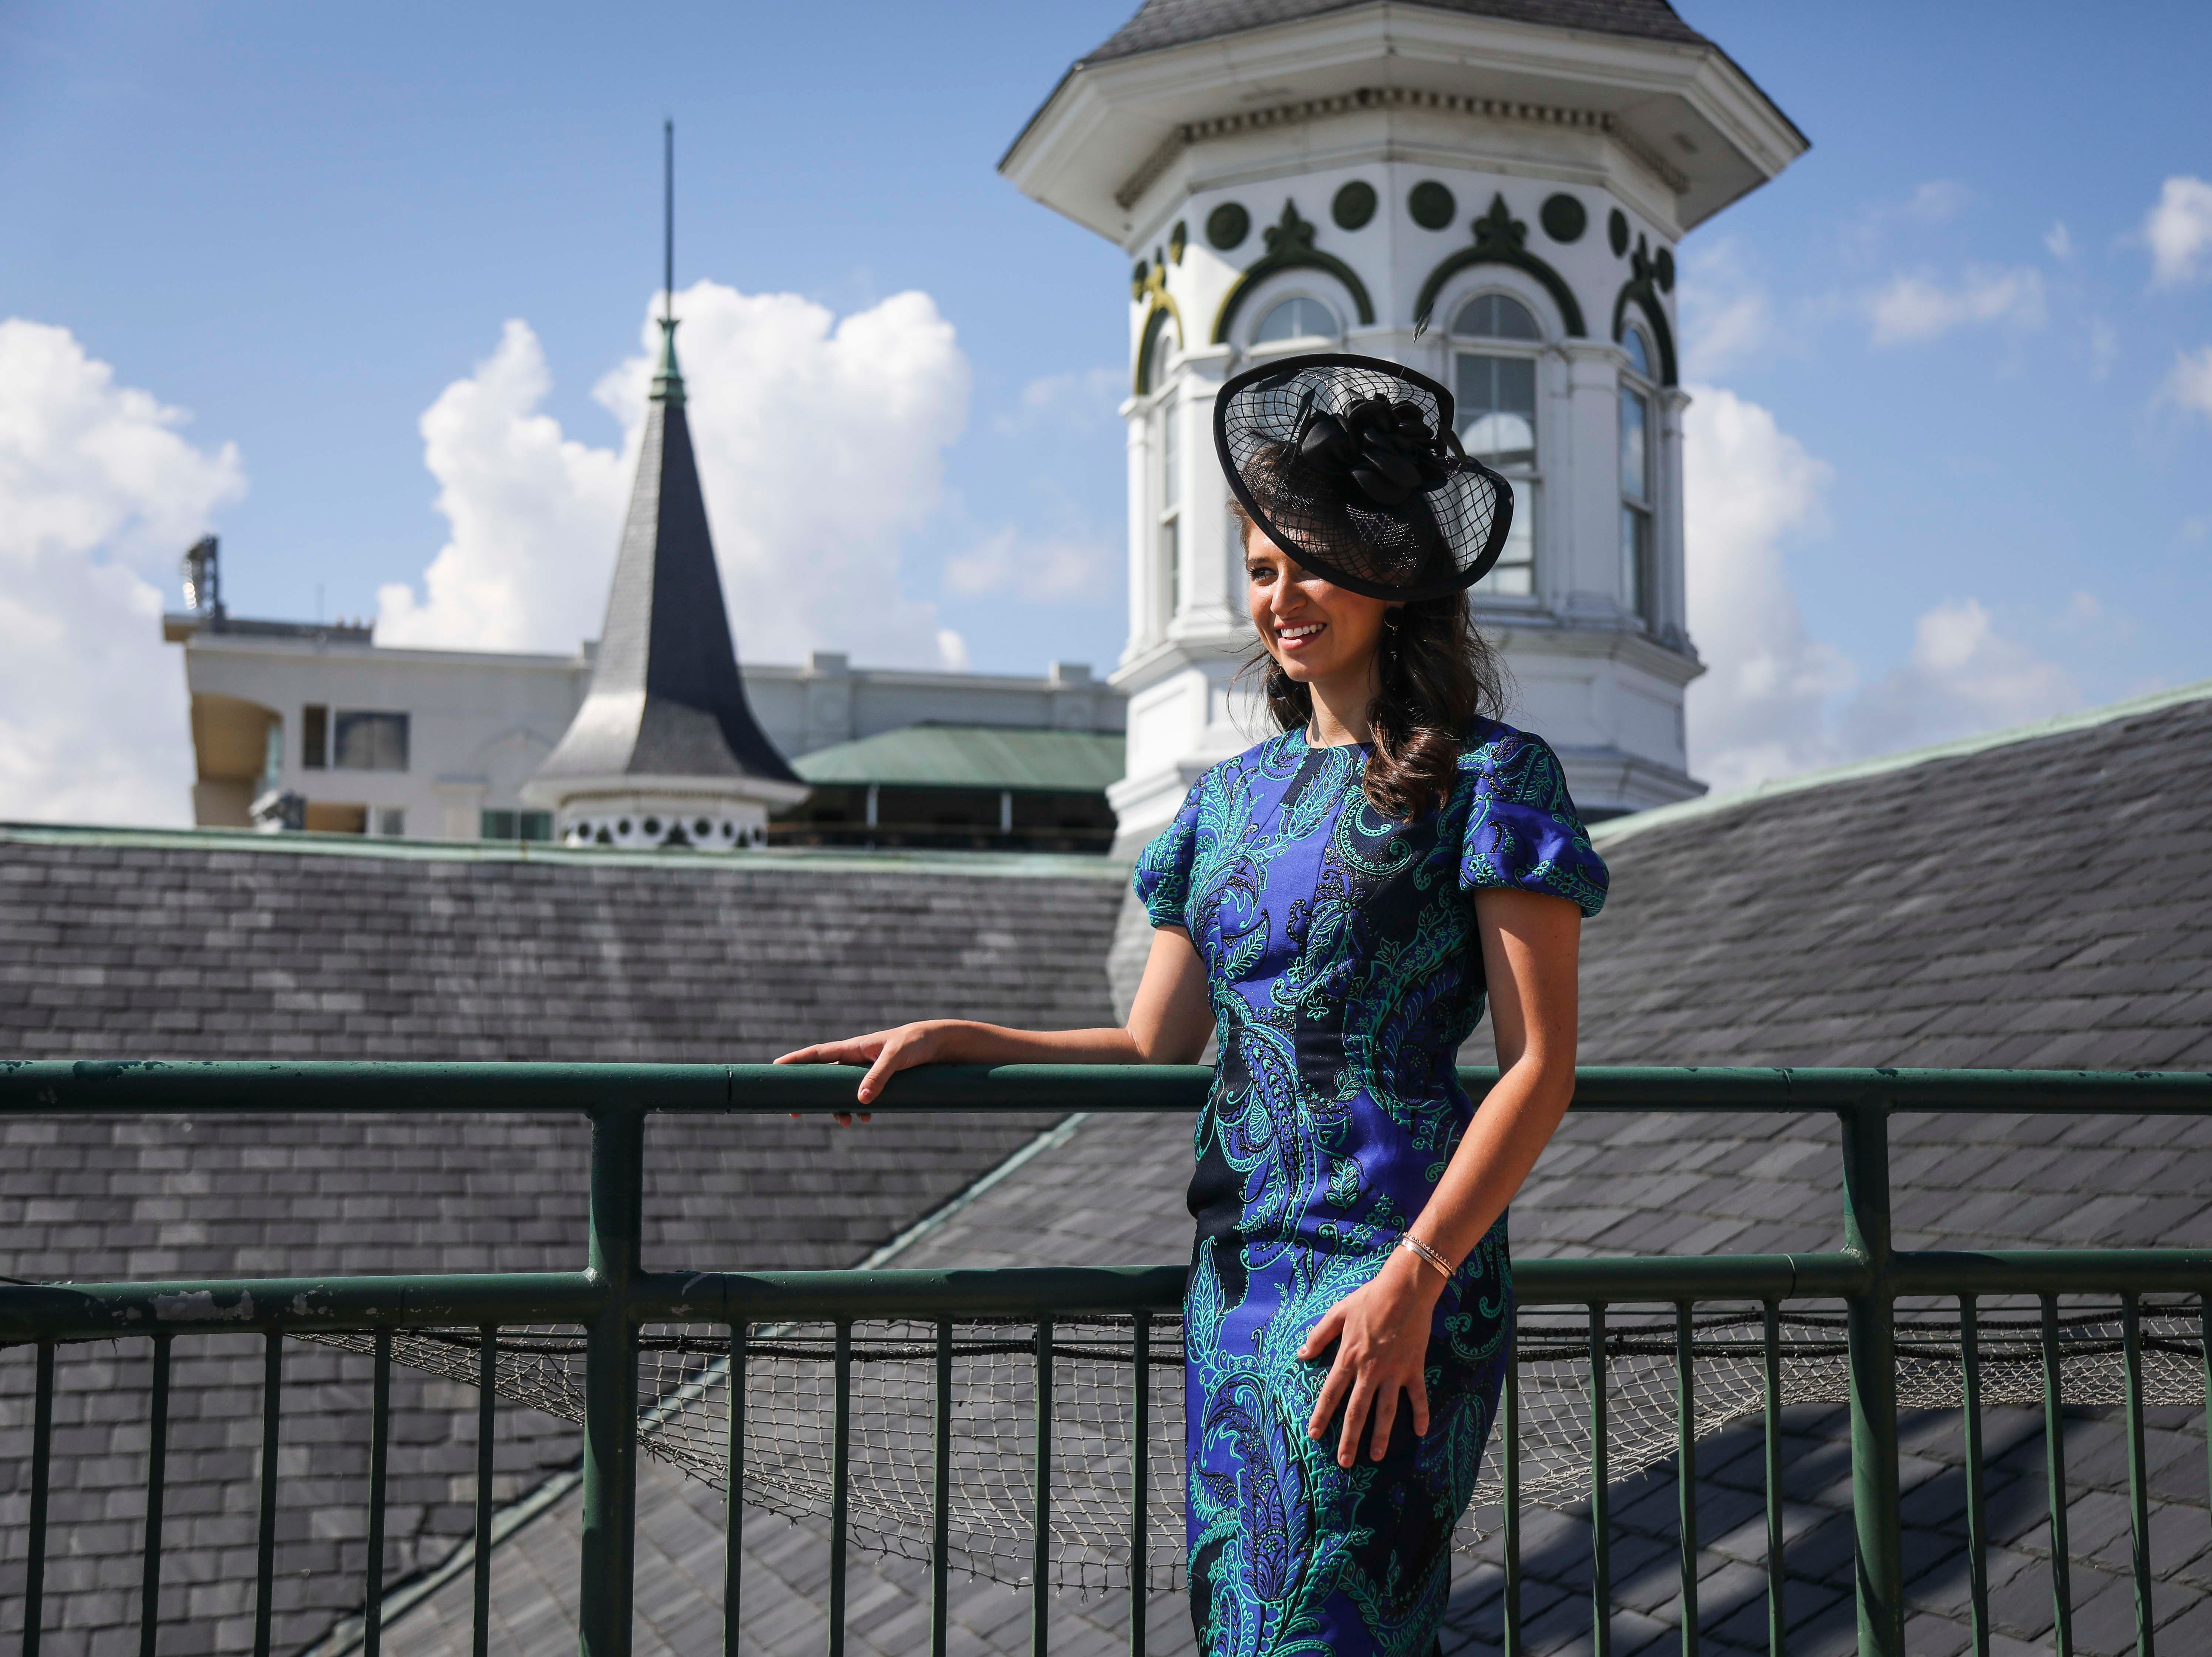 Katie Bouchard, Miss Kentucky, models one of Christine Moore's handmade Cam Hats as well as a Lourdes Chavez dress at Churchill Downs on Wednesday, October 3, 2018.